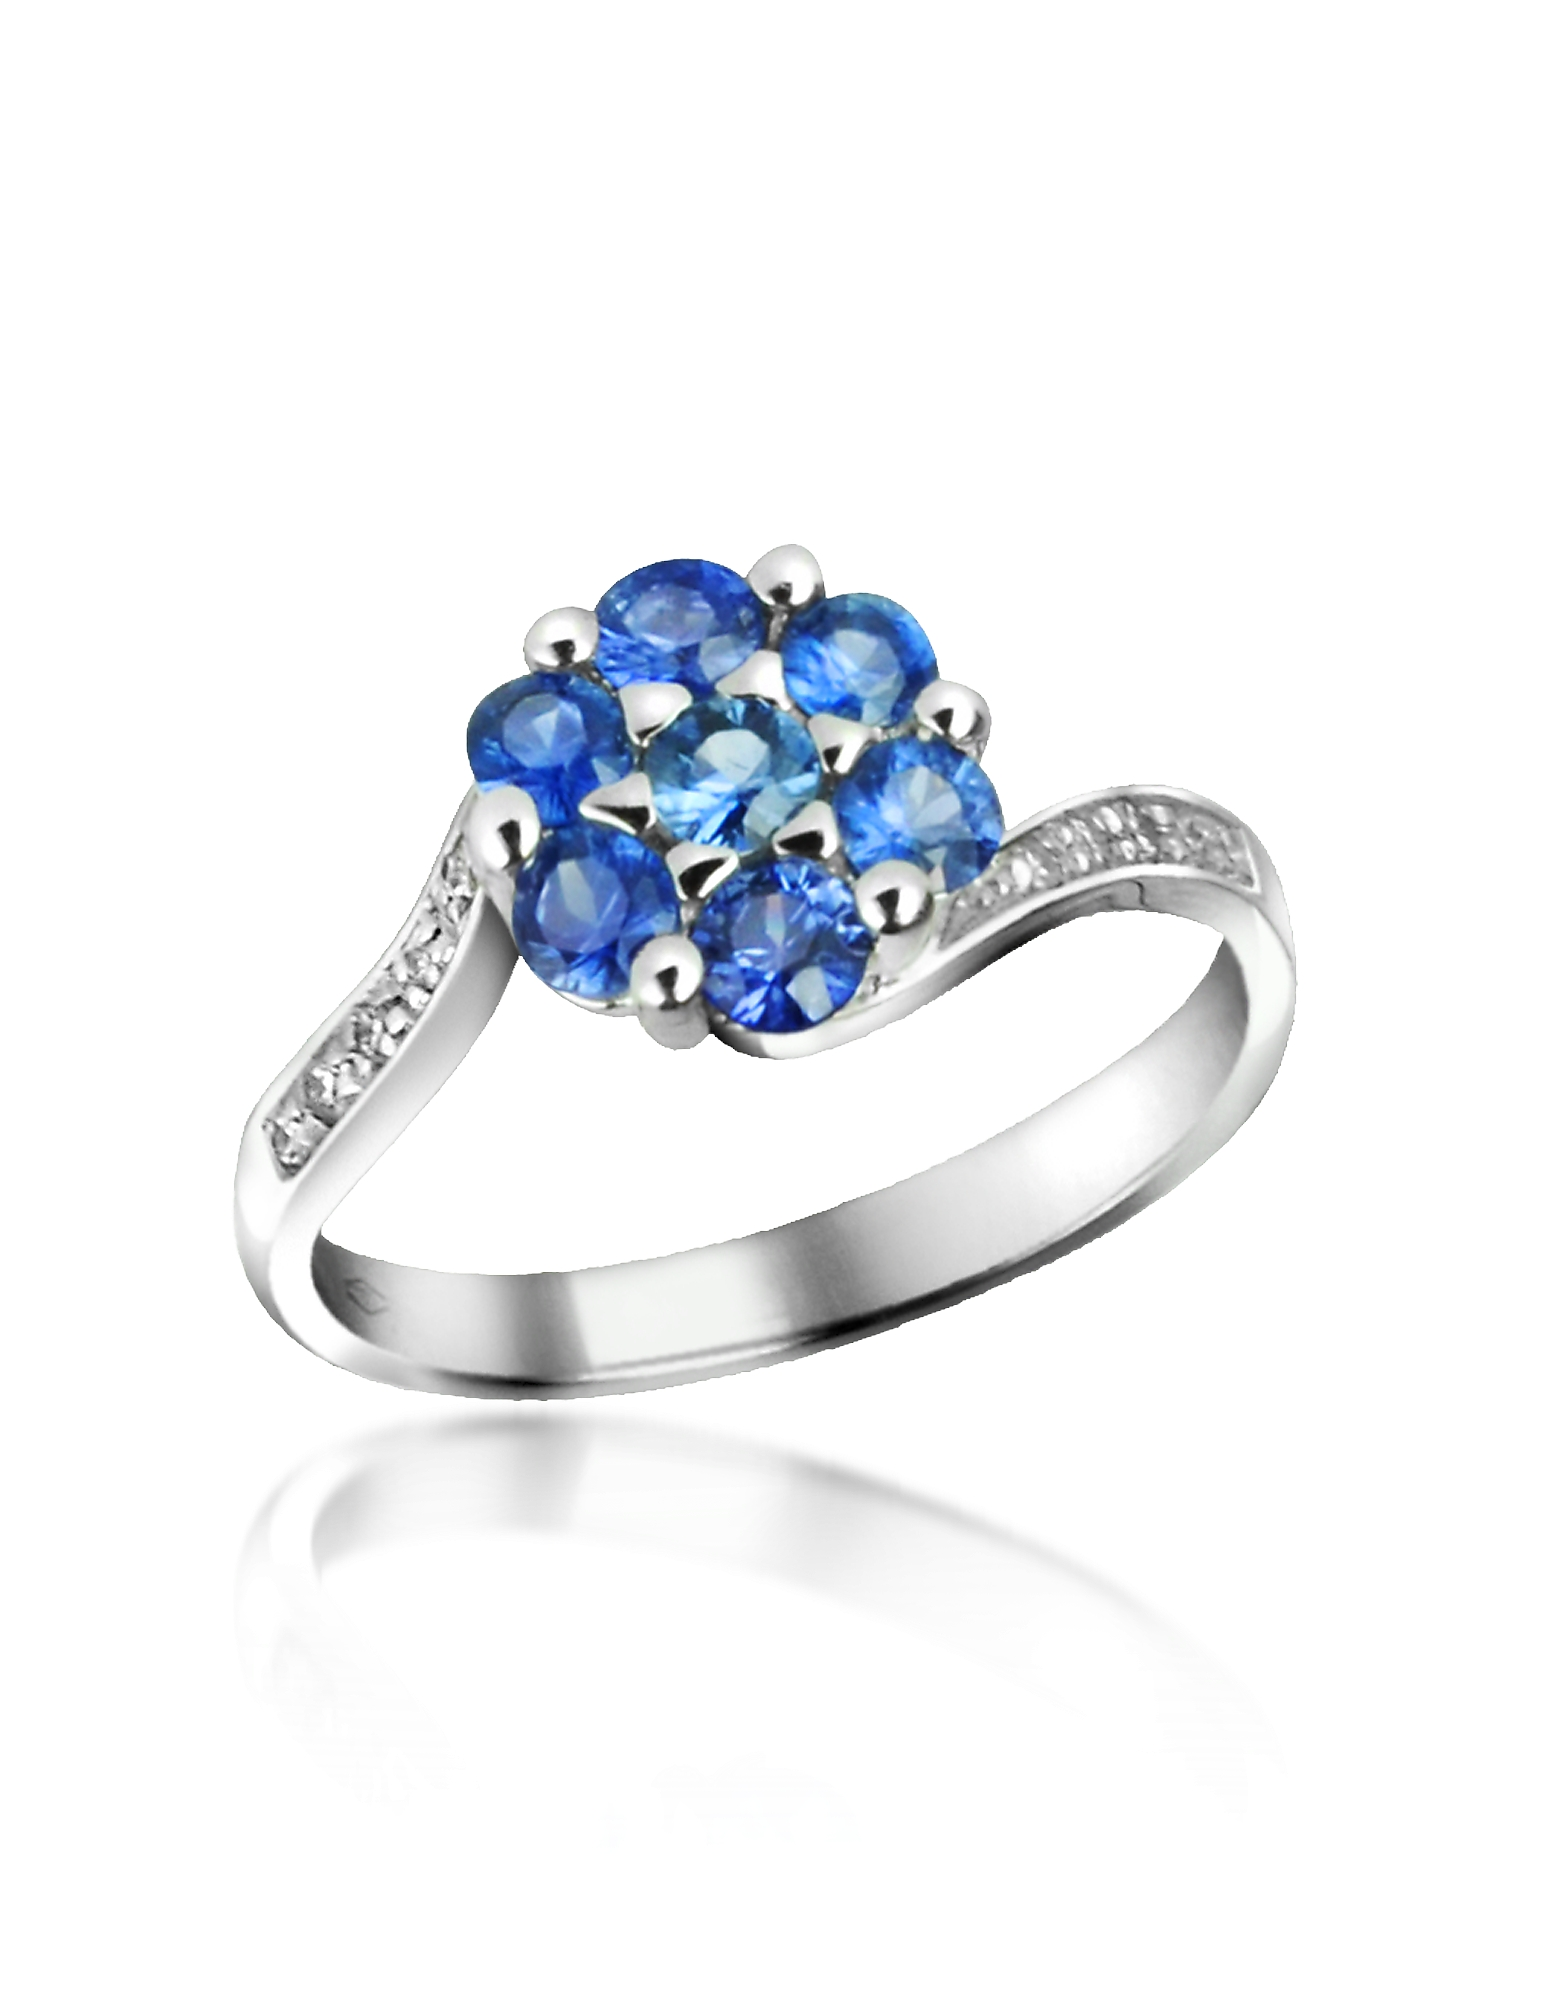 Incanto Royale Designer Rings, Sapphire and Diamond 18K Gold Ring